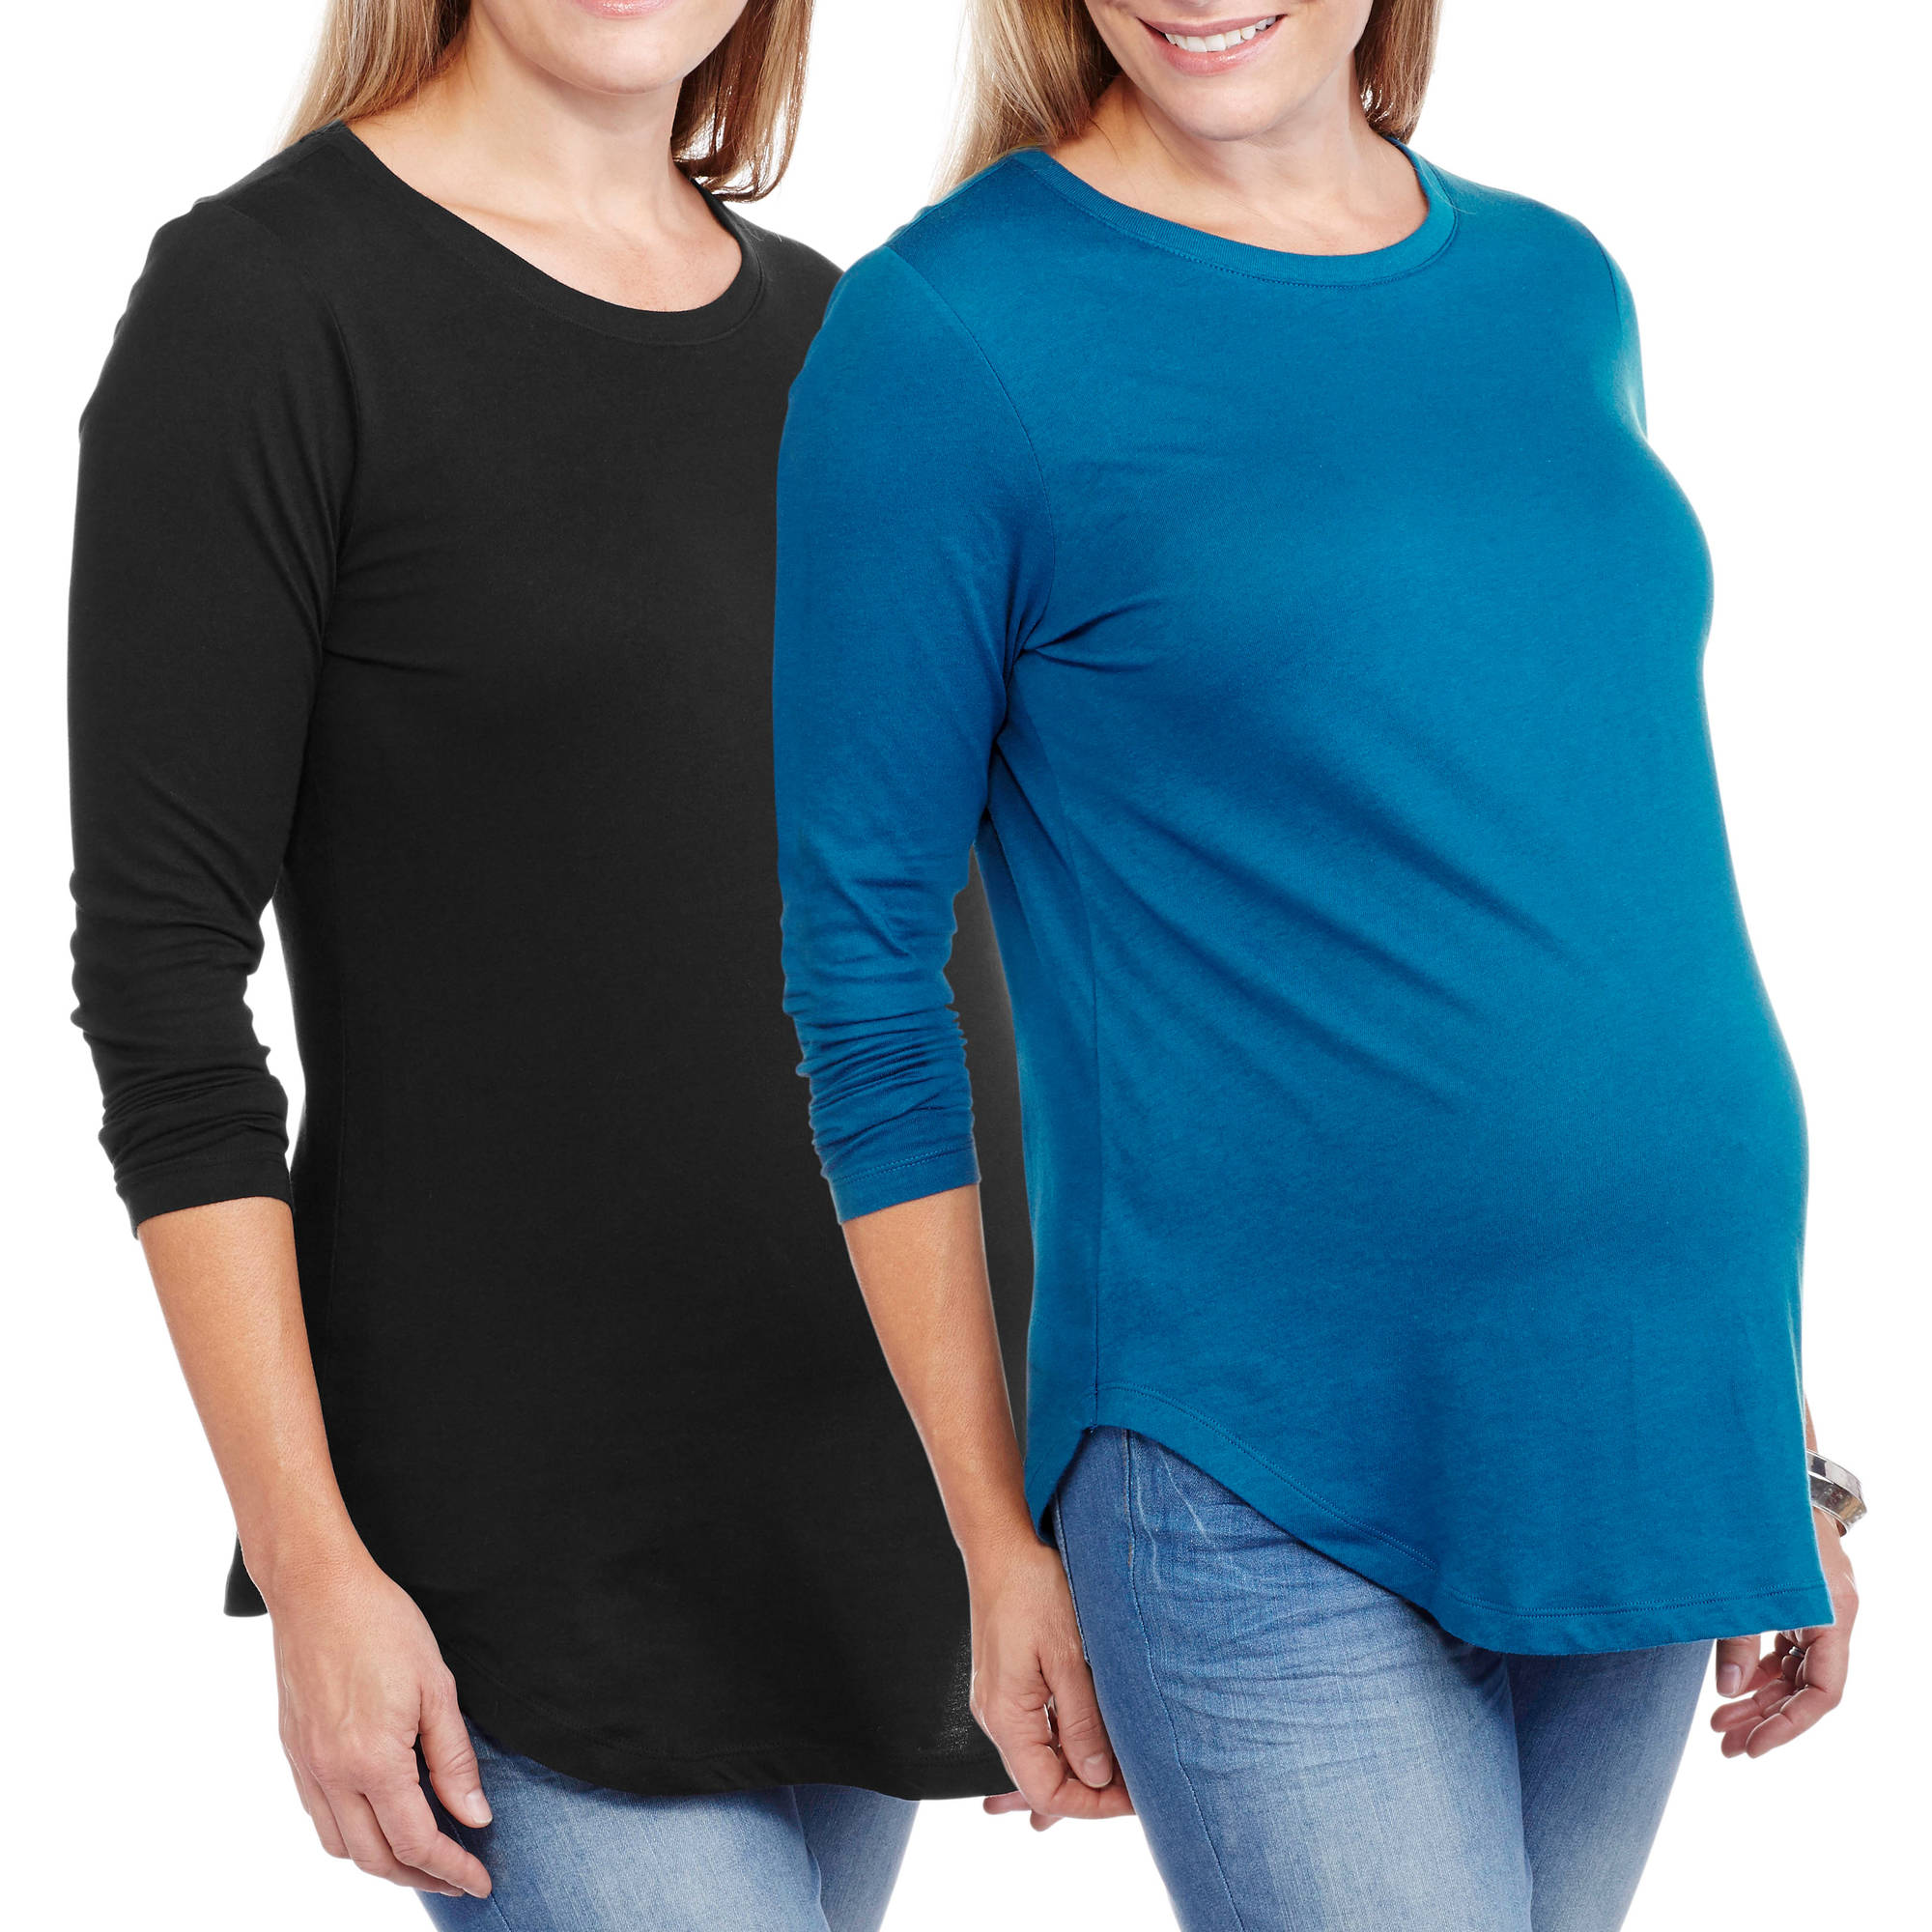 Faded Glory Maternity Long Sleeve Crew Neck Tee, 2-Pack